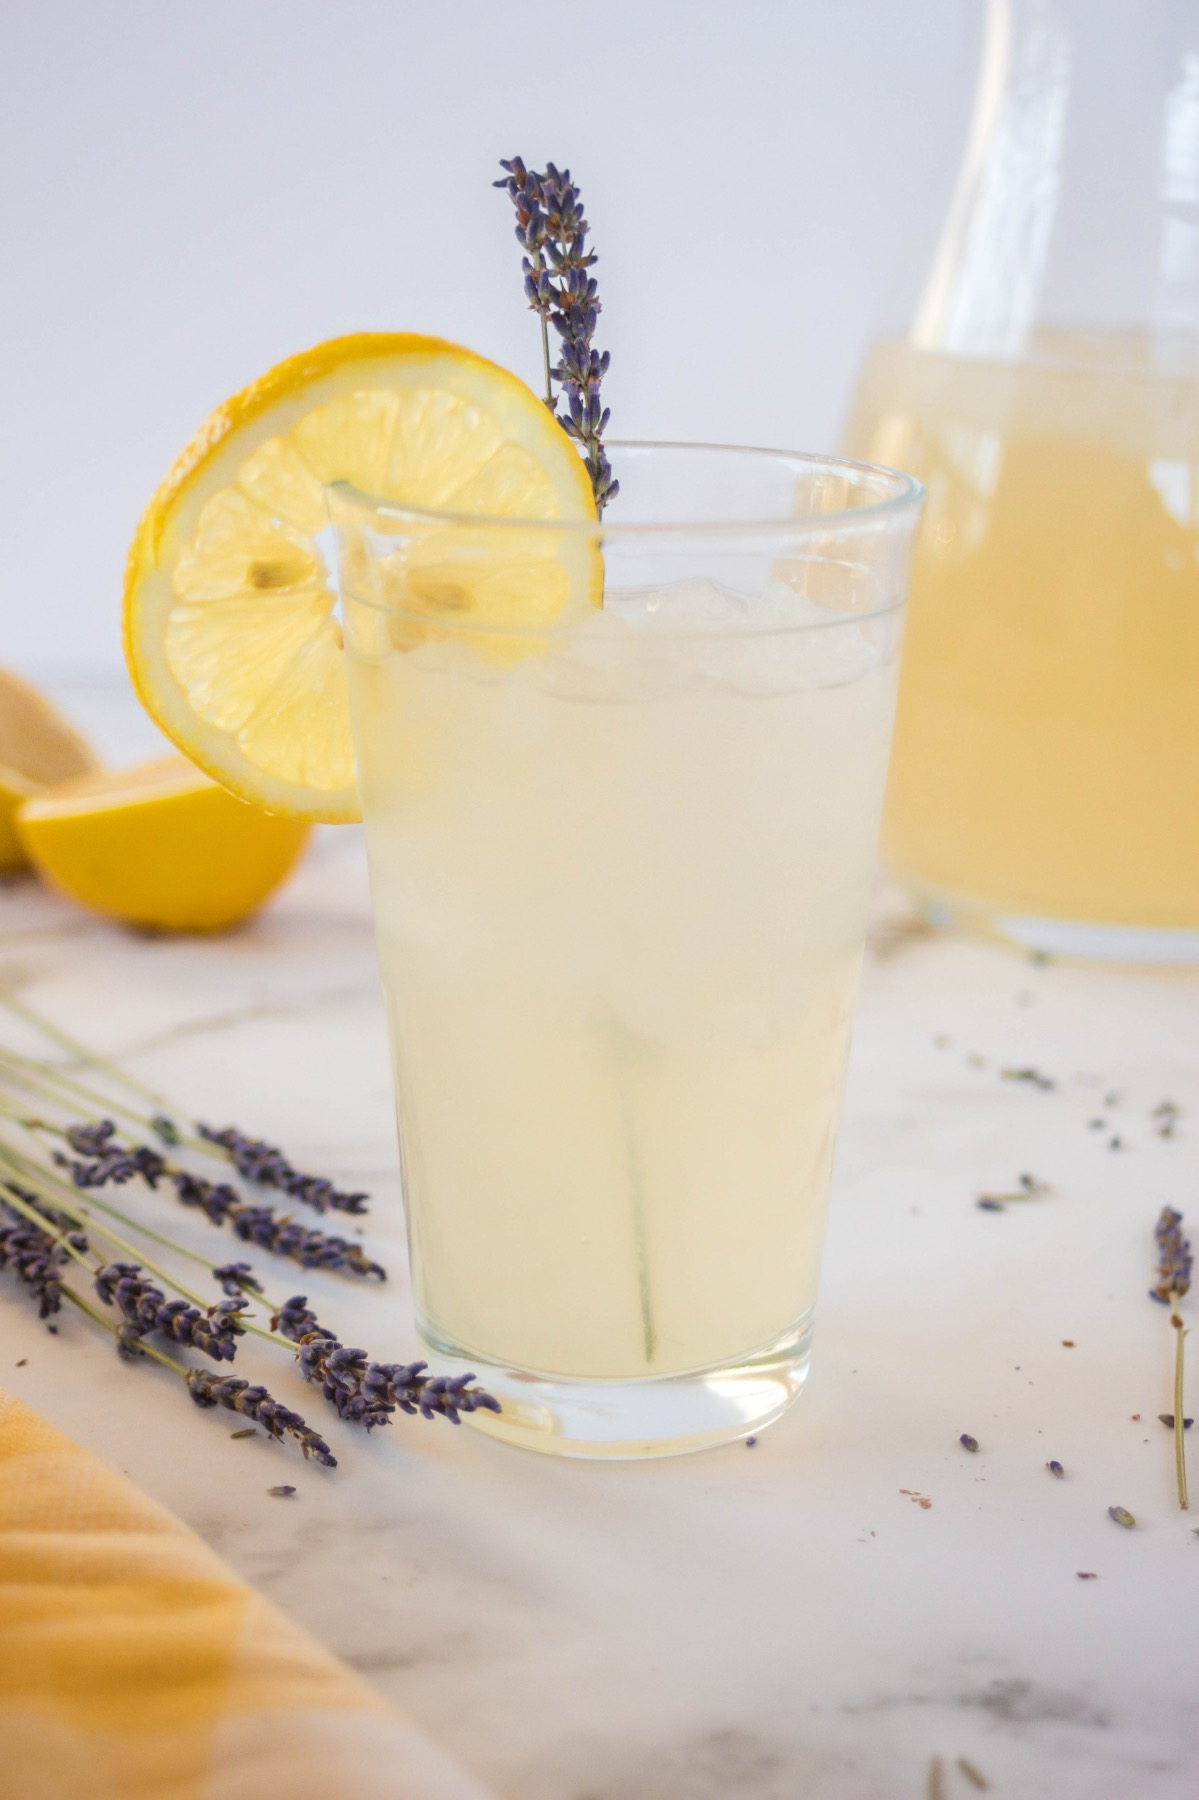 serve lavender lemonade over ice with a sprig of herbs